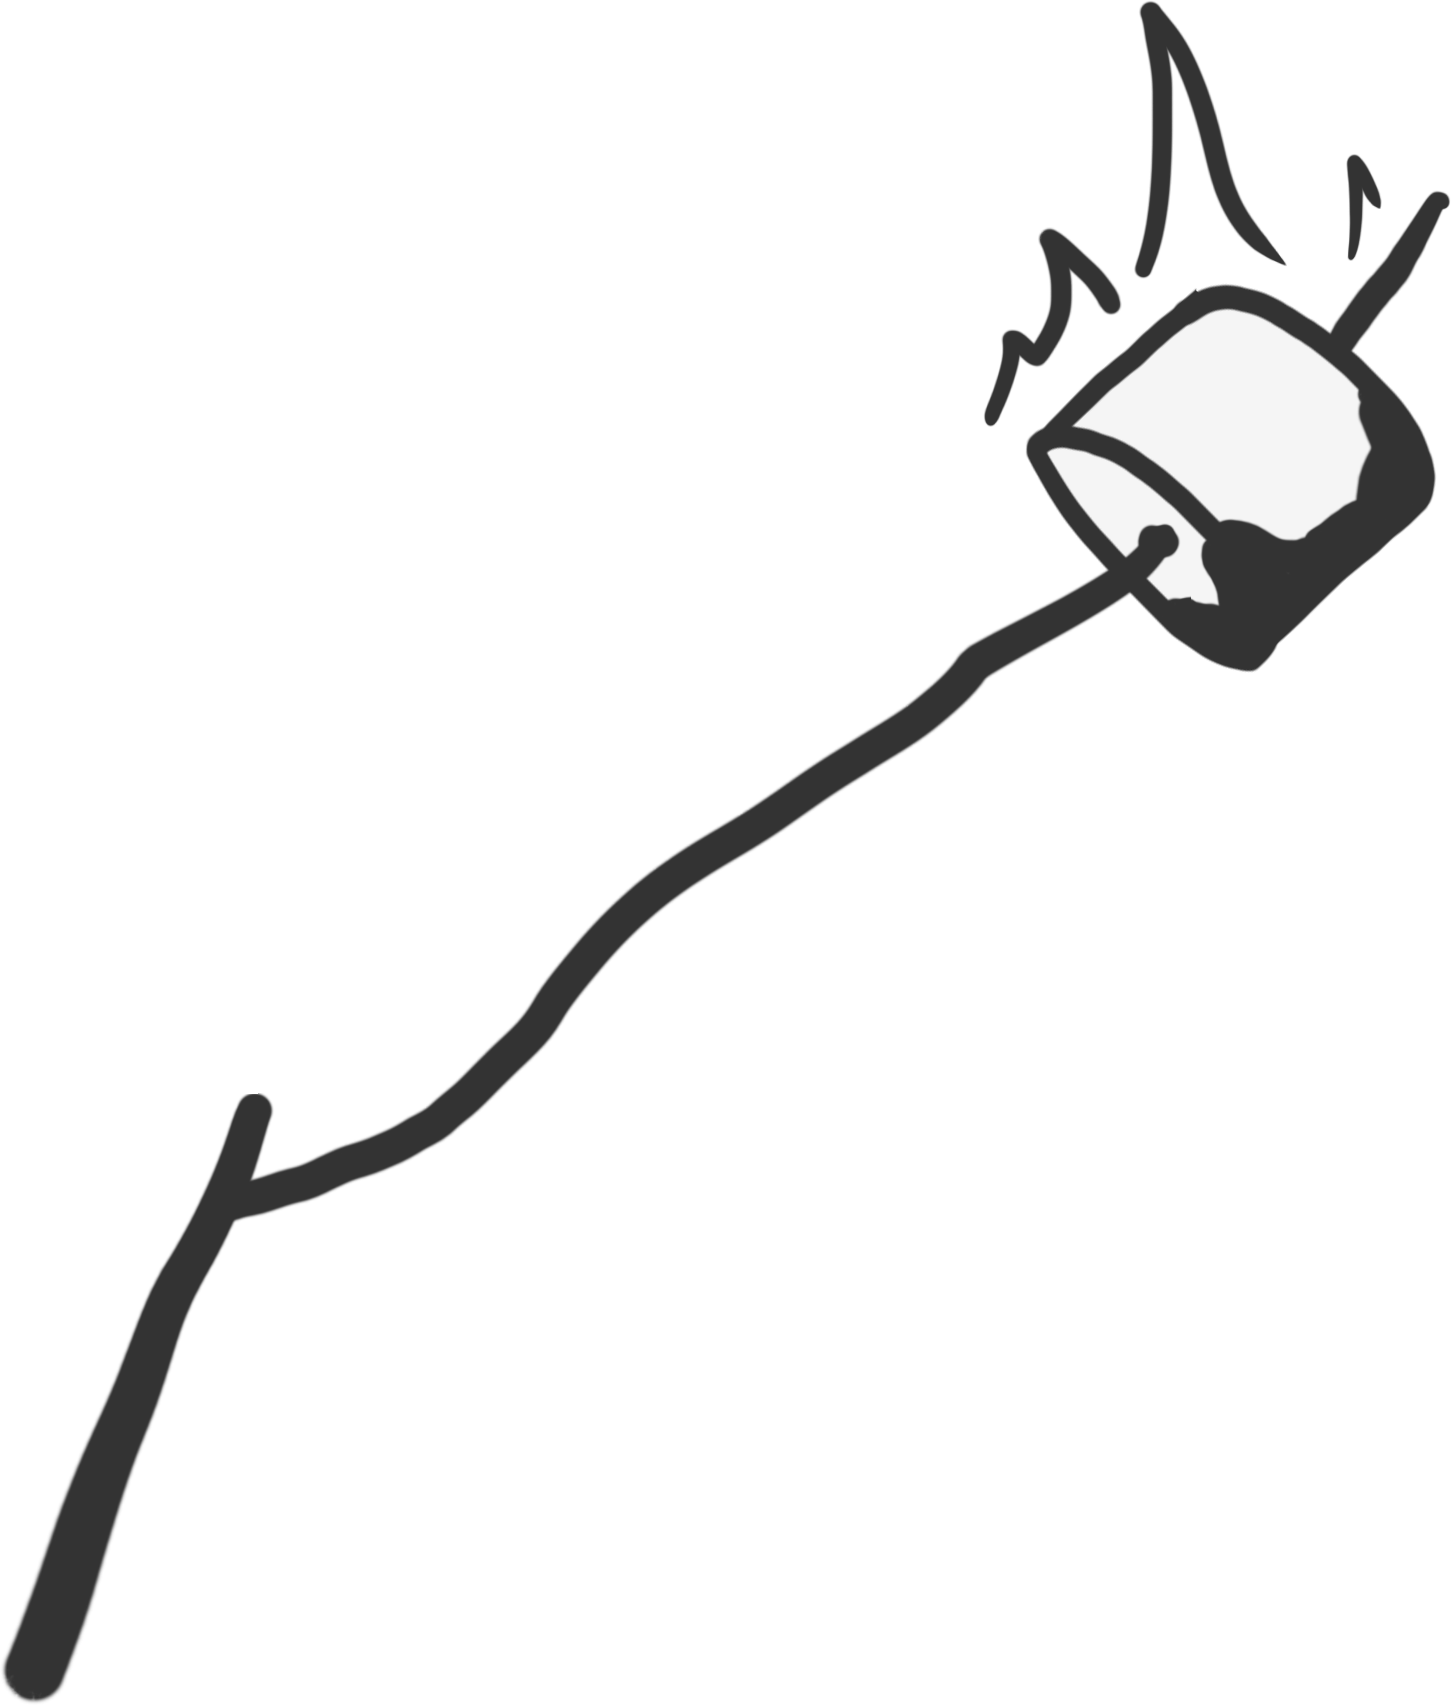 clip art free library Camp clipart silhouette. Camping at getdrawings com.